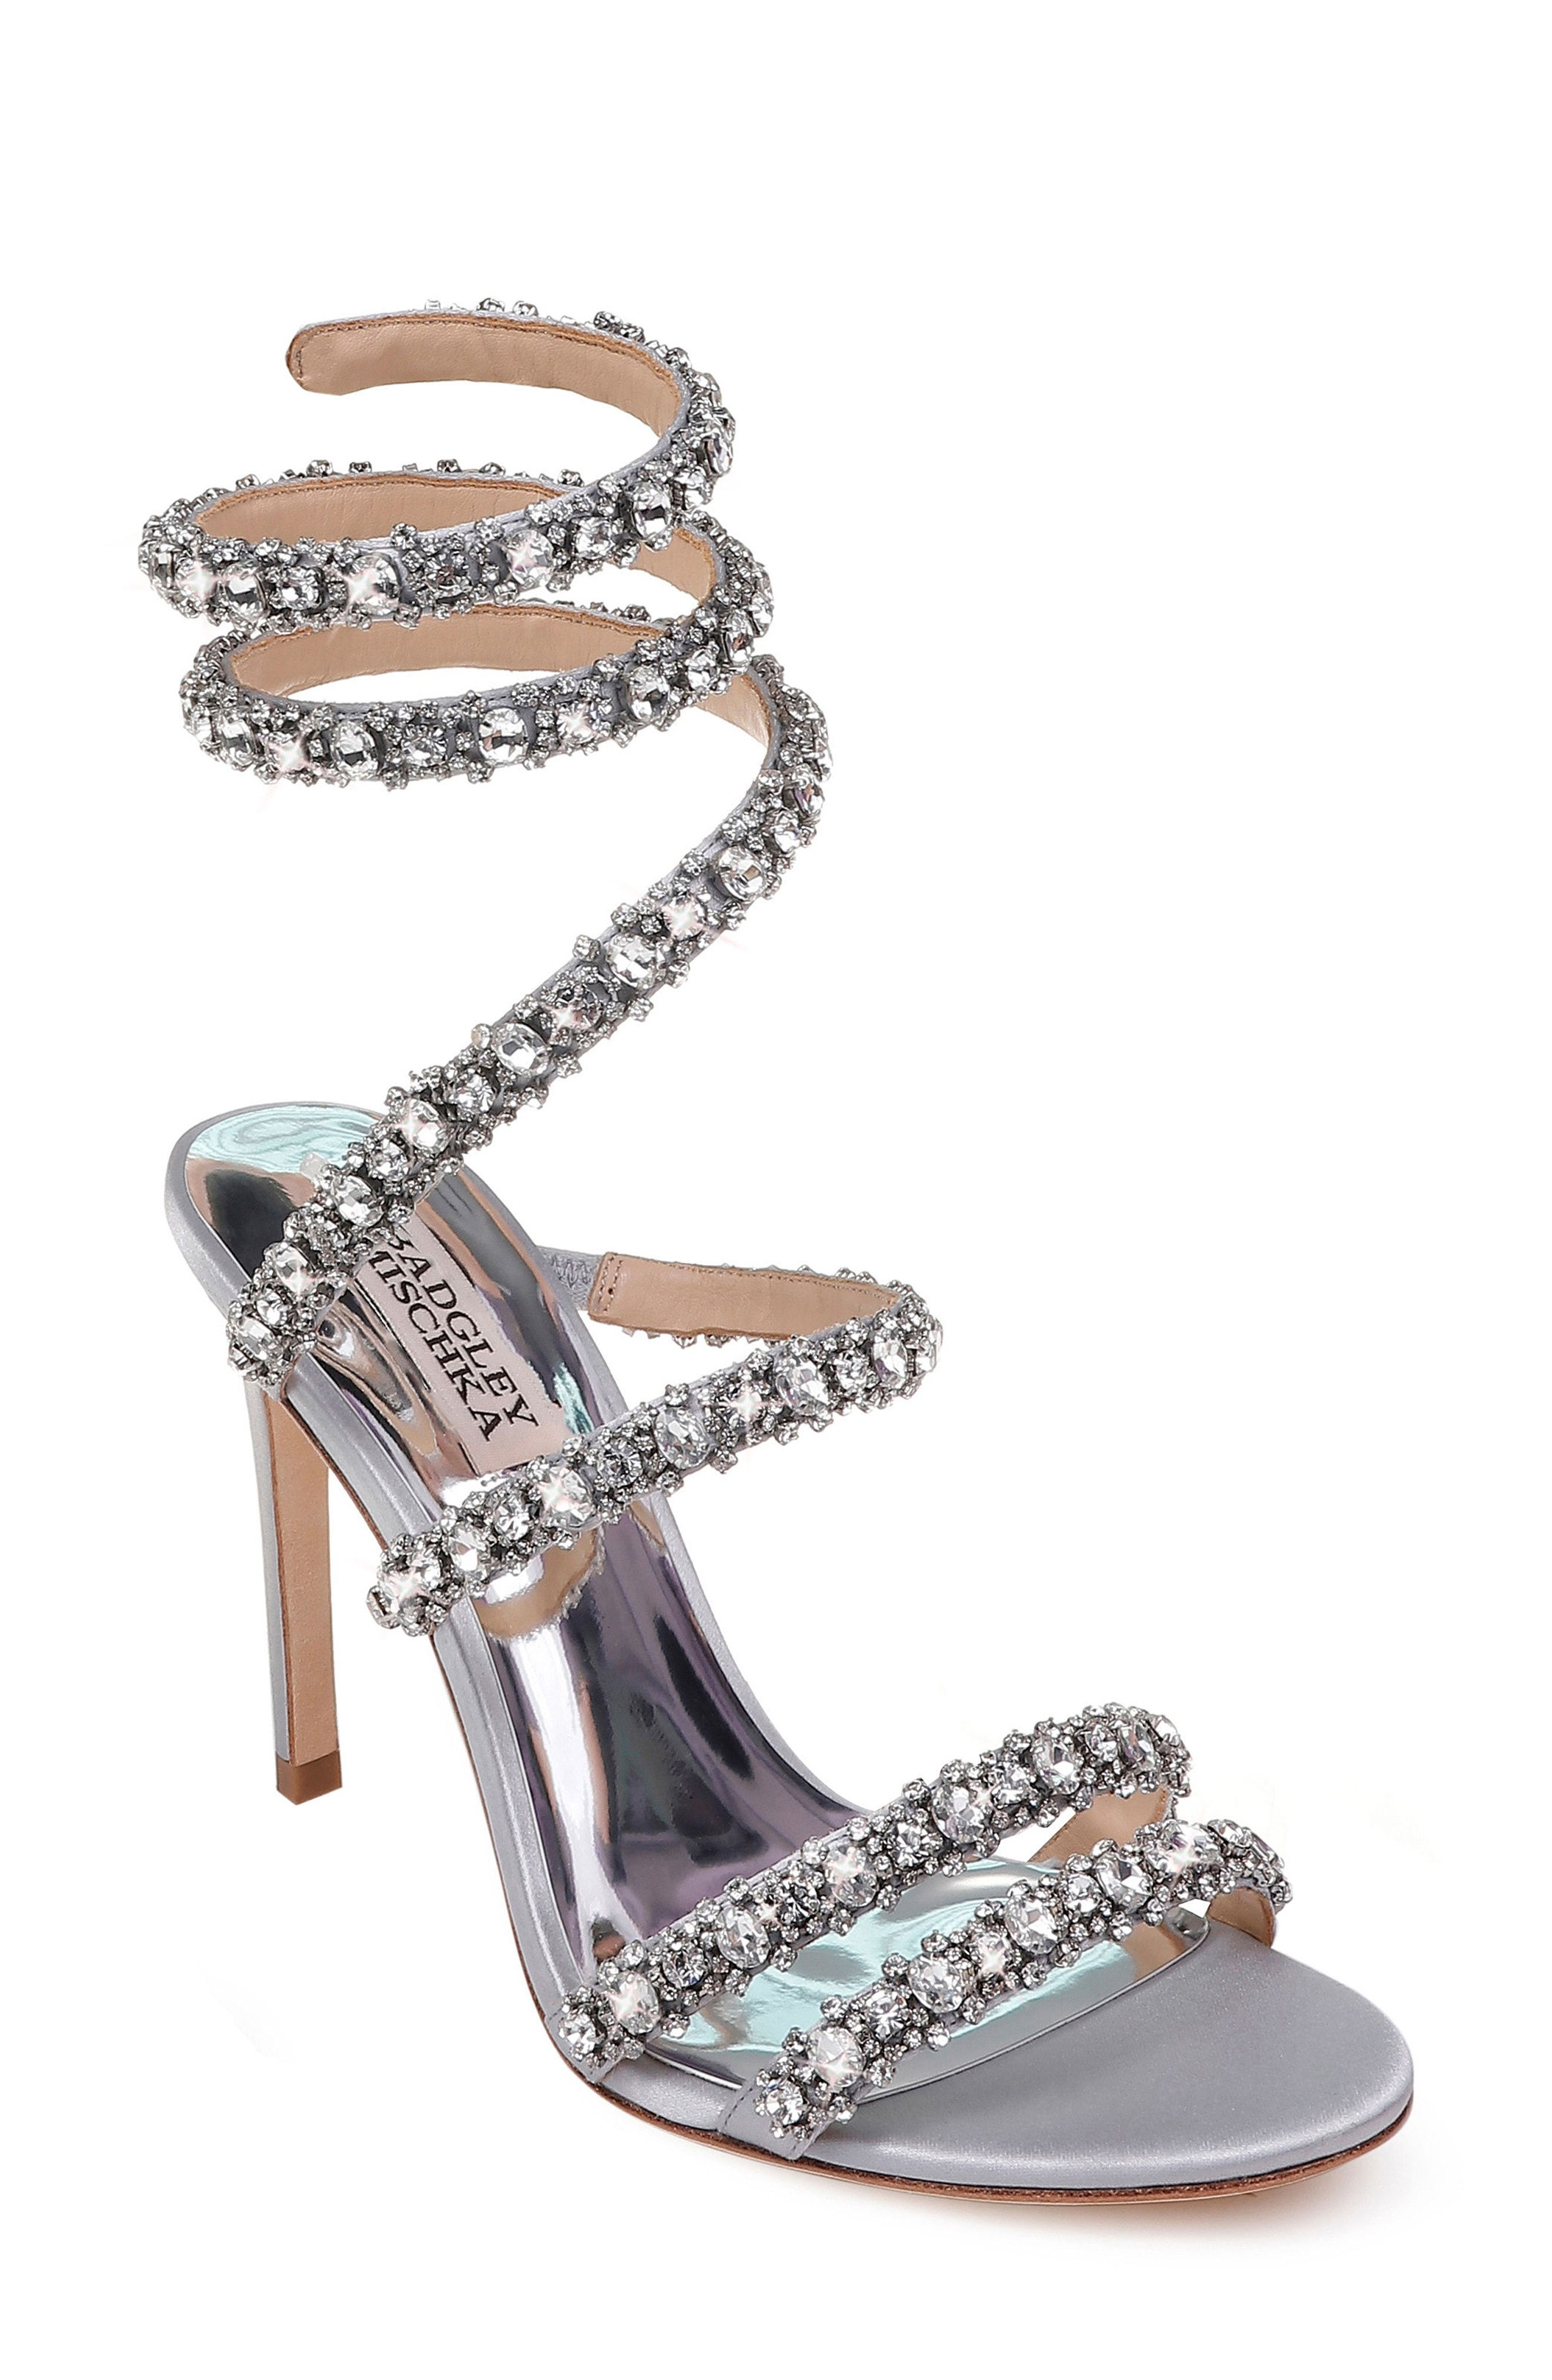 35d4f7cfb0271 Badgley Mischka Peace Crystal Ankle Wrap Sandal available at ...